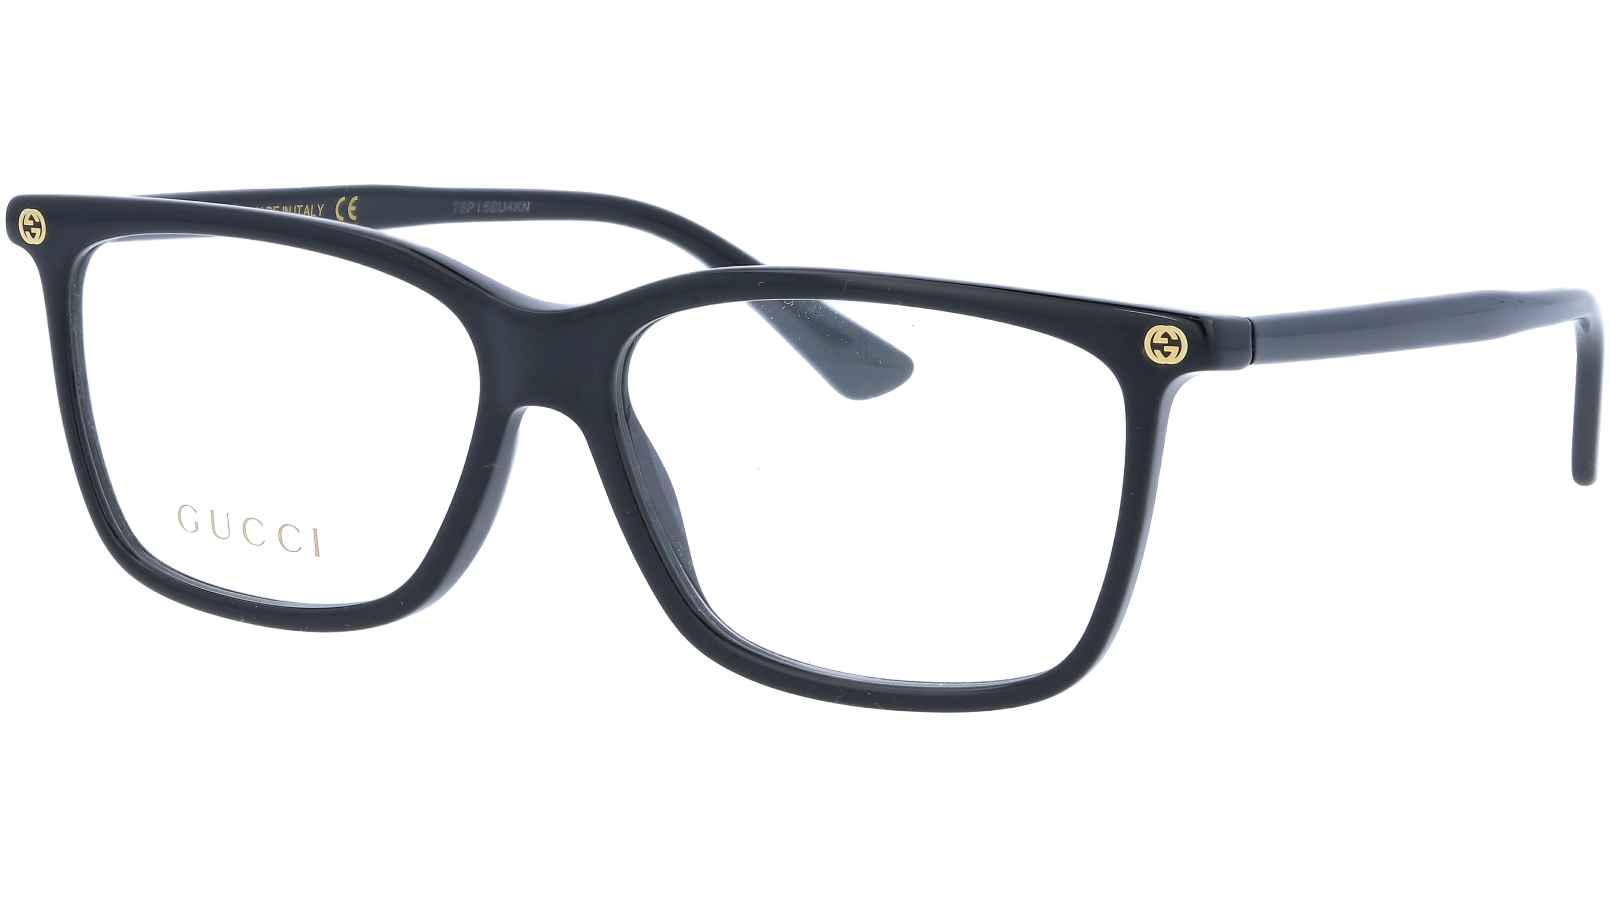 GUCCI GG0094O 006 54 BLACK Glasses